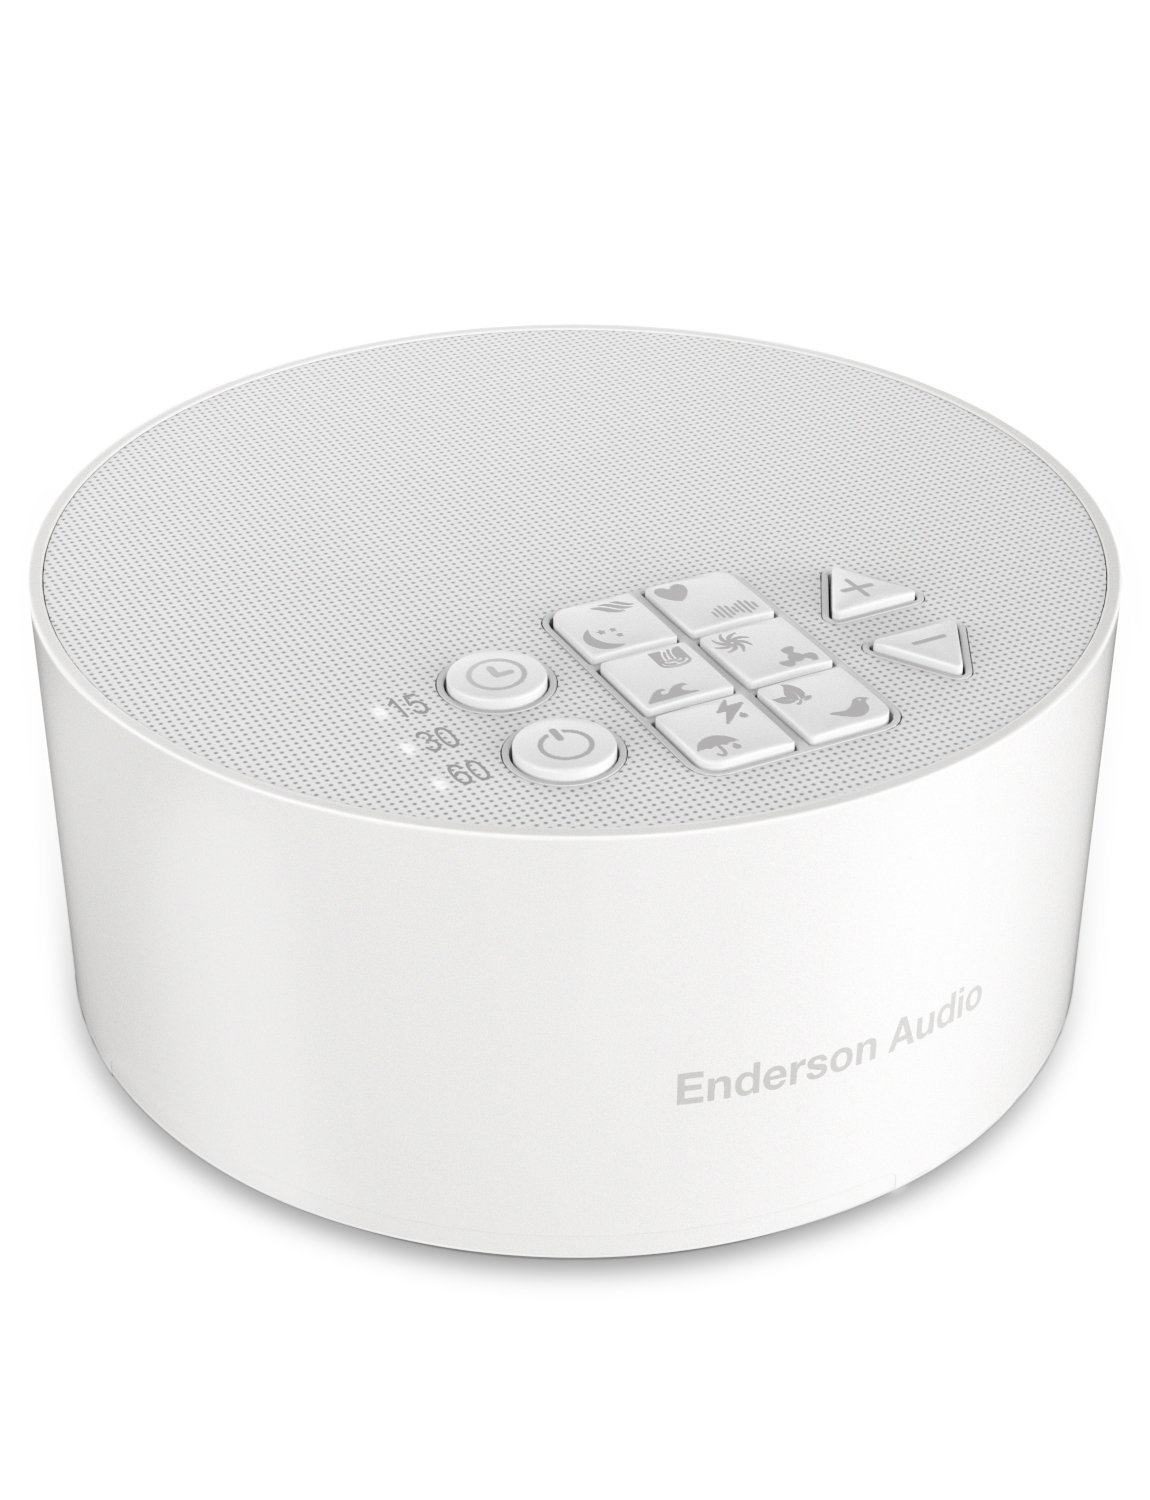 Portable White Noise Machine with 12 Non-Looping Soothing Sounds, Enderson Audio Rechargeable Sleep Sound Machine with Memory Function, 15 Levels of Volume, 3 Timer Settings & 30 Hours Runtime by Enderson Audio (Image #1)